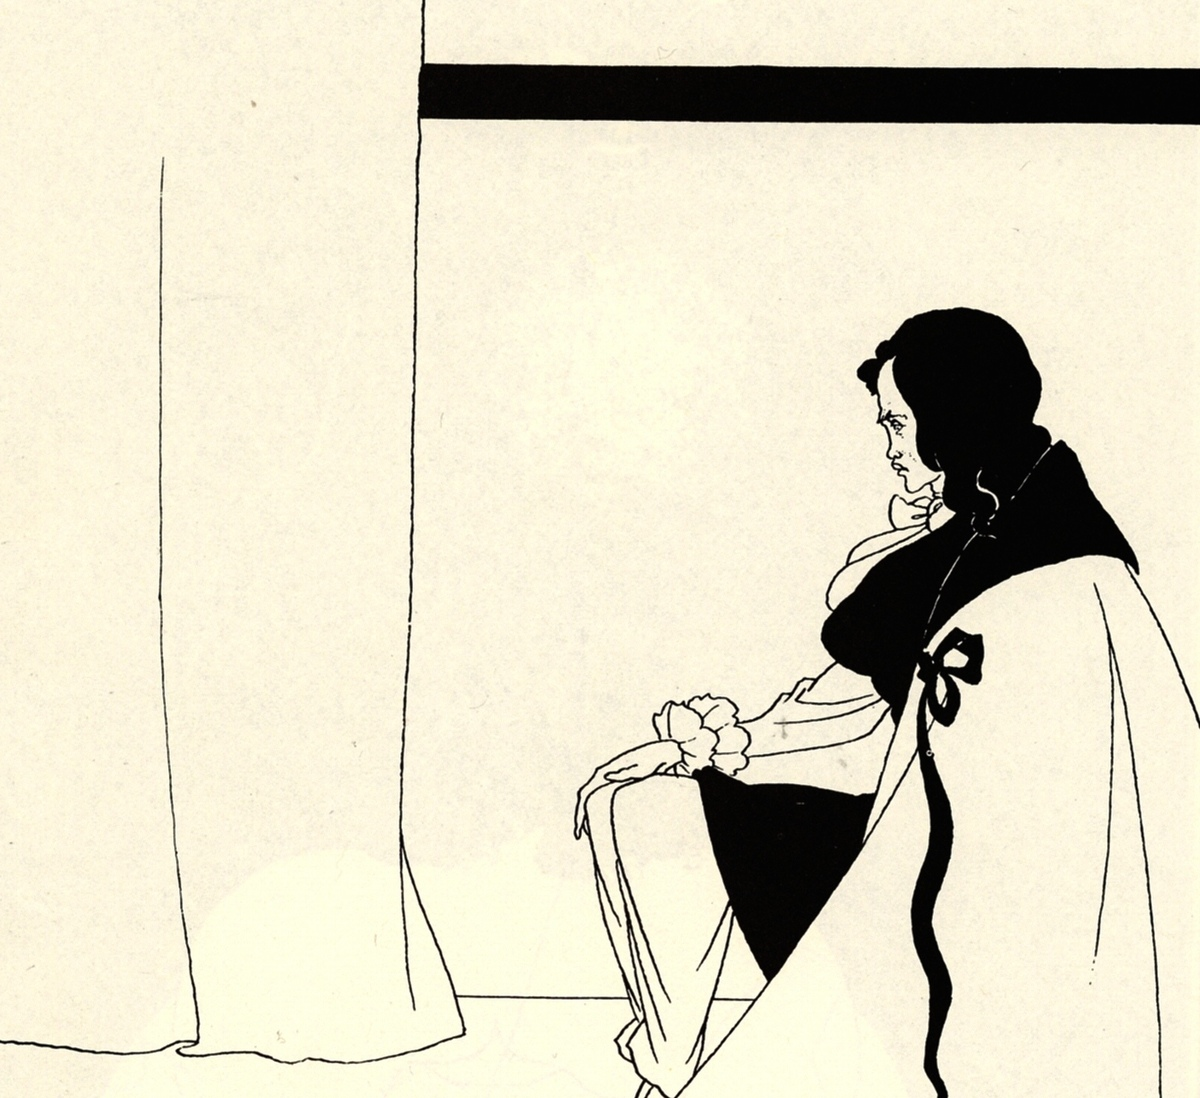 architecture of the anthropocene pt haunted houses living the fall of the house of usher an illustration by aubrey beardsley from 1894 while beautiful beardsley s image notably depicts usher in an isolated